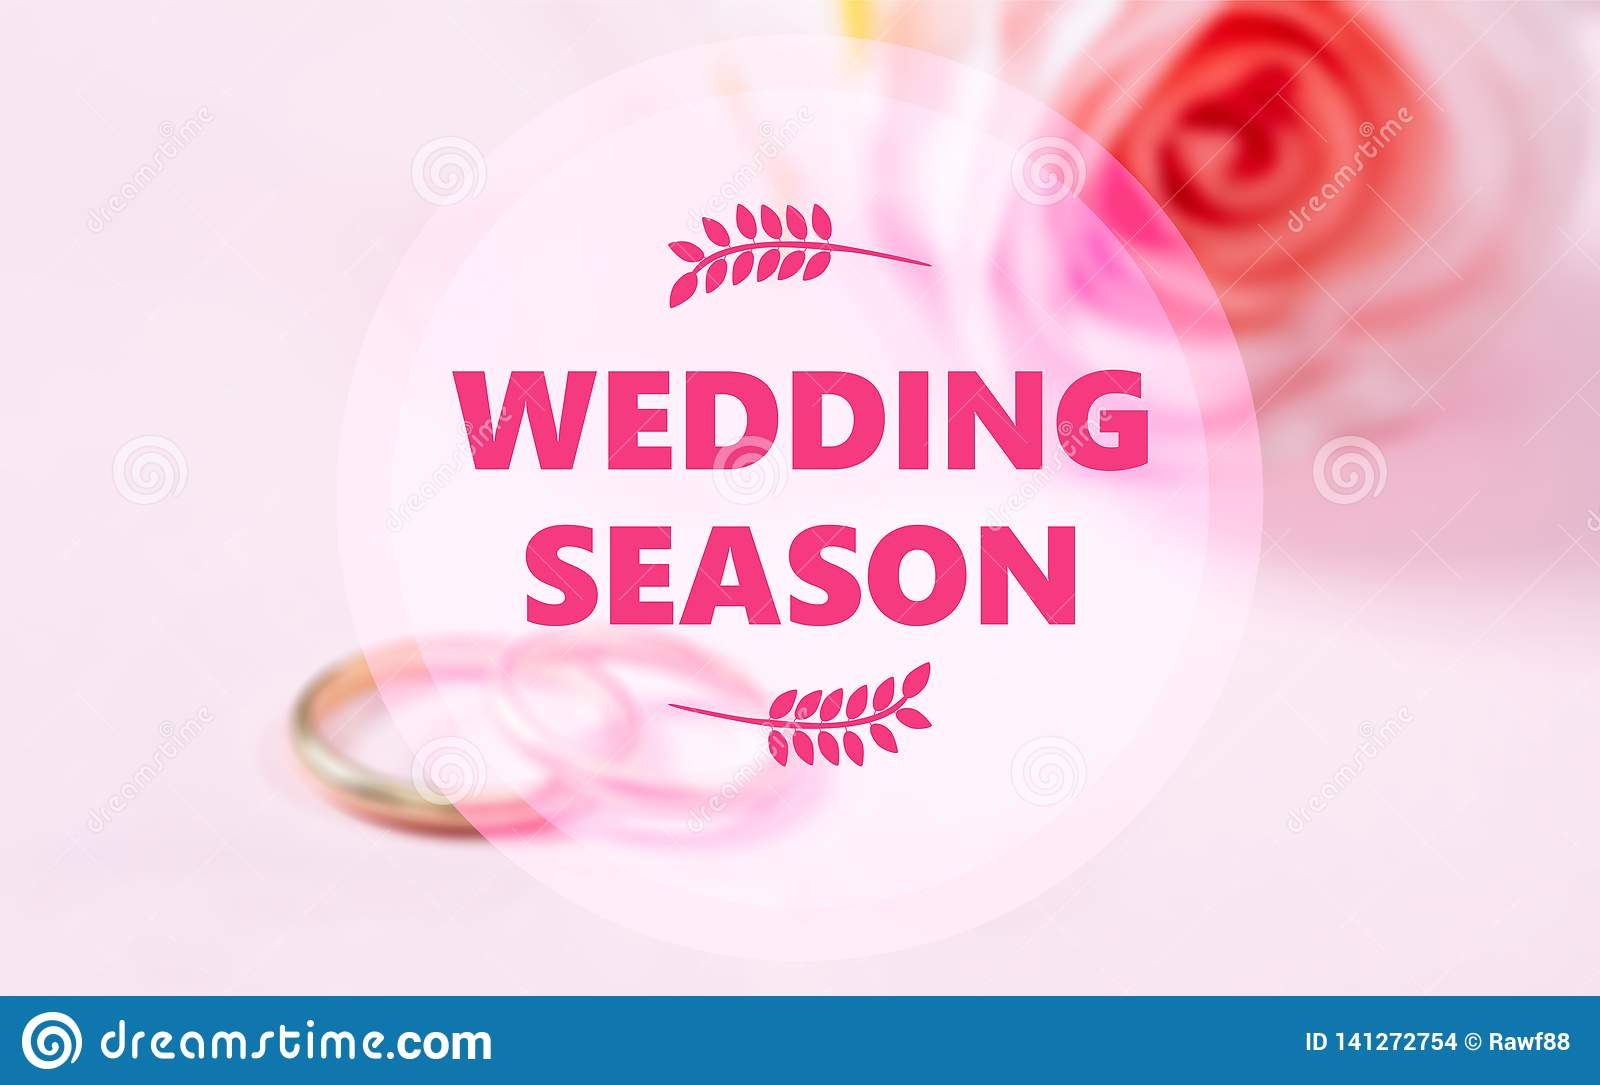 438734ca340e1 Wedding season is here. Wedding season text on blur wedding rings and pink  rose background